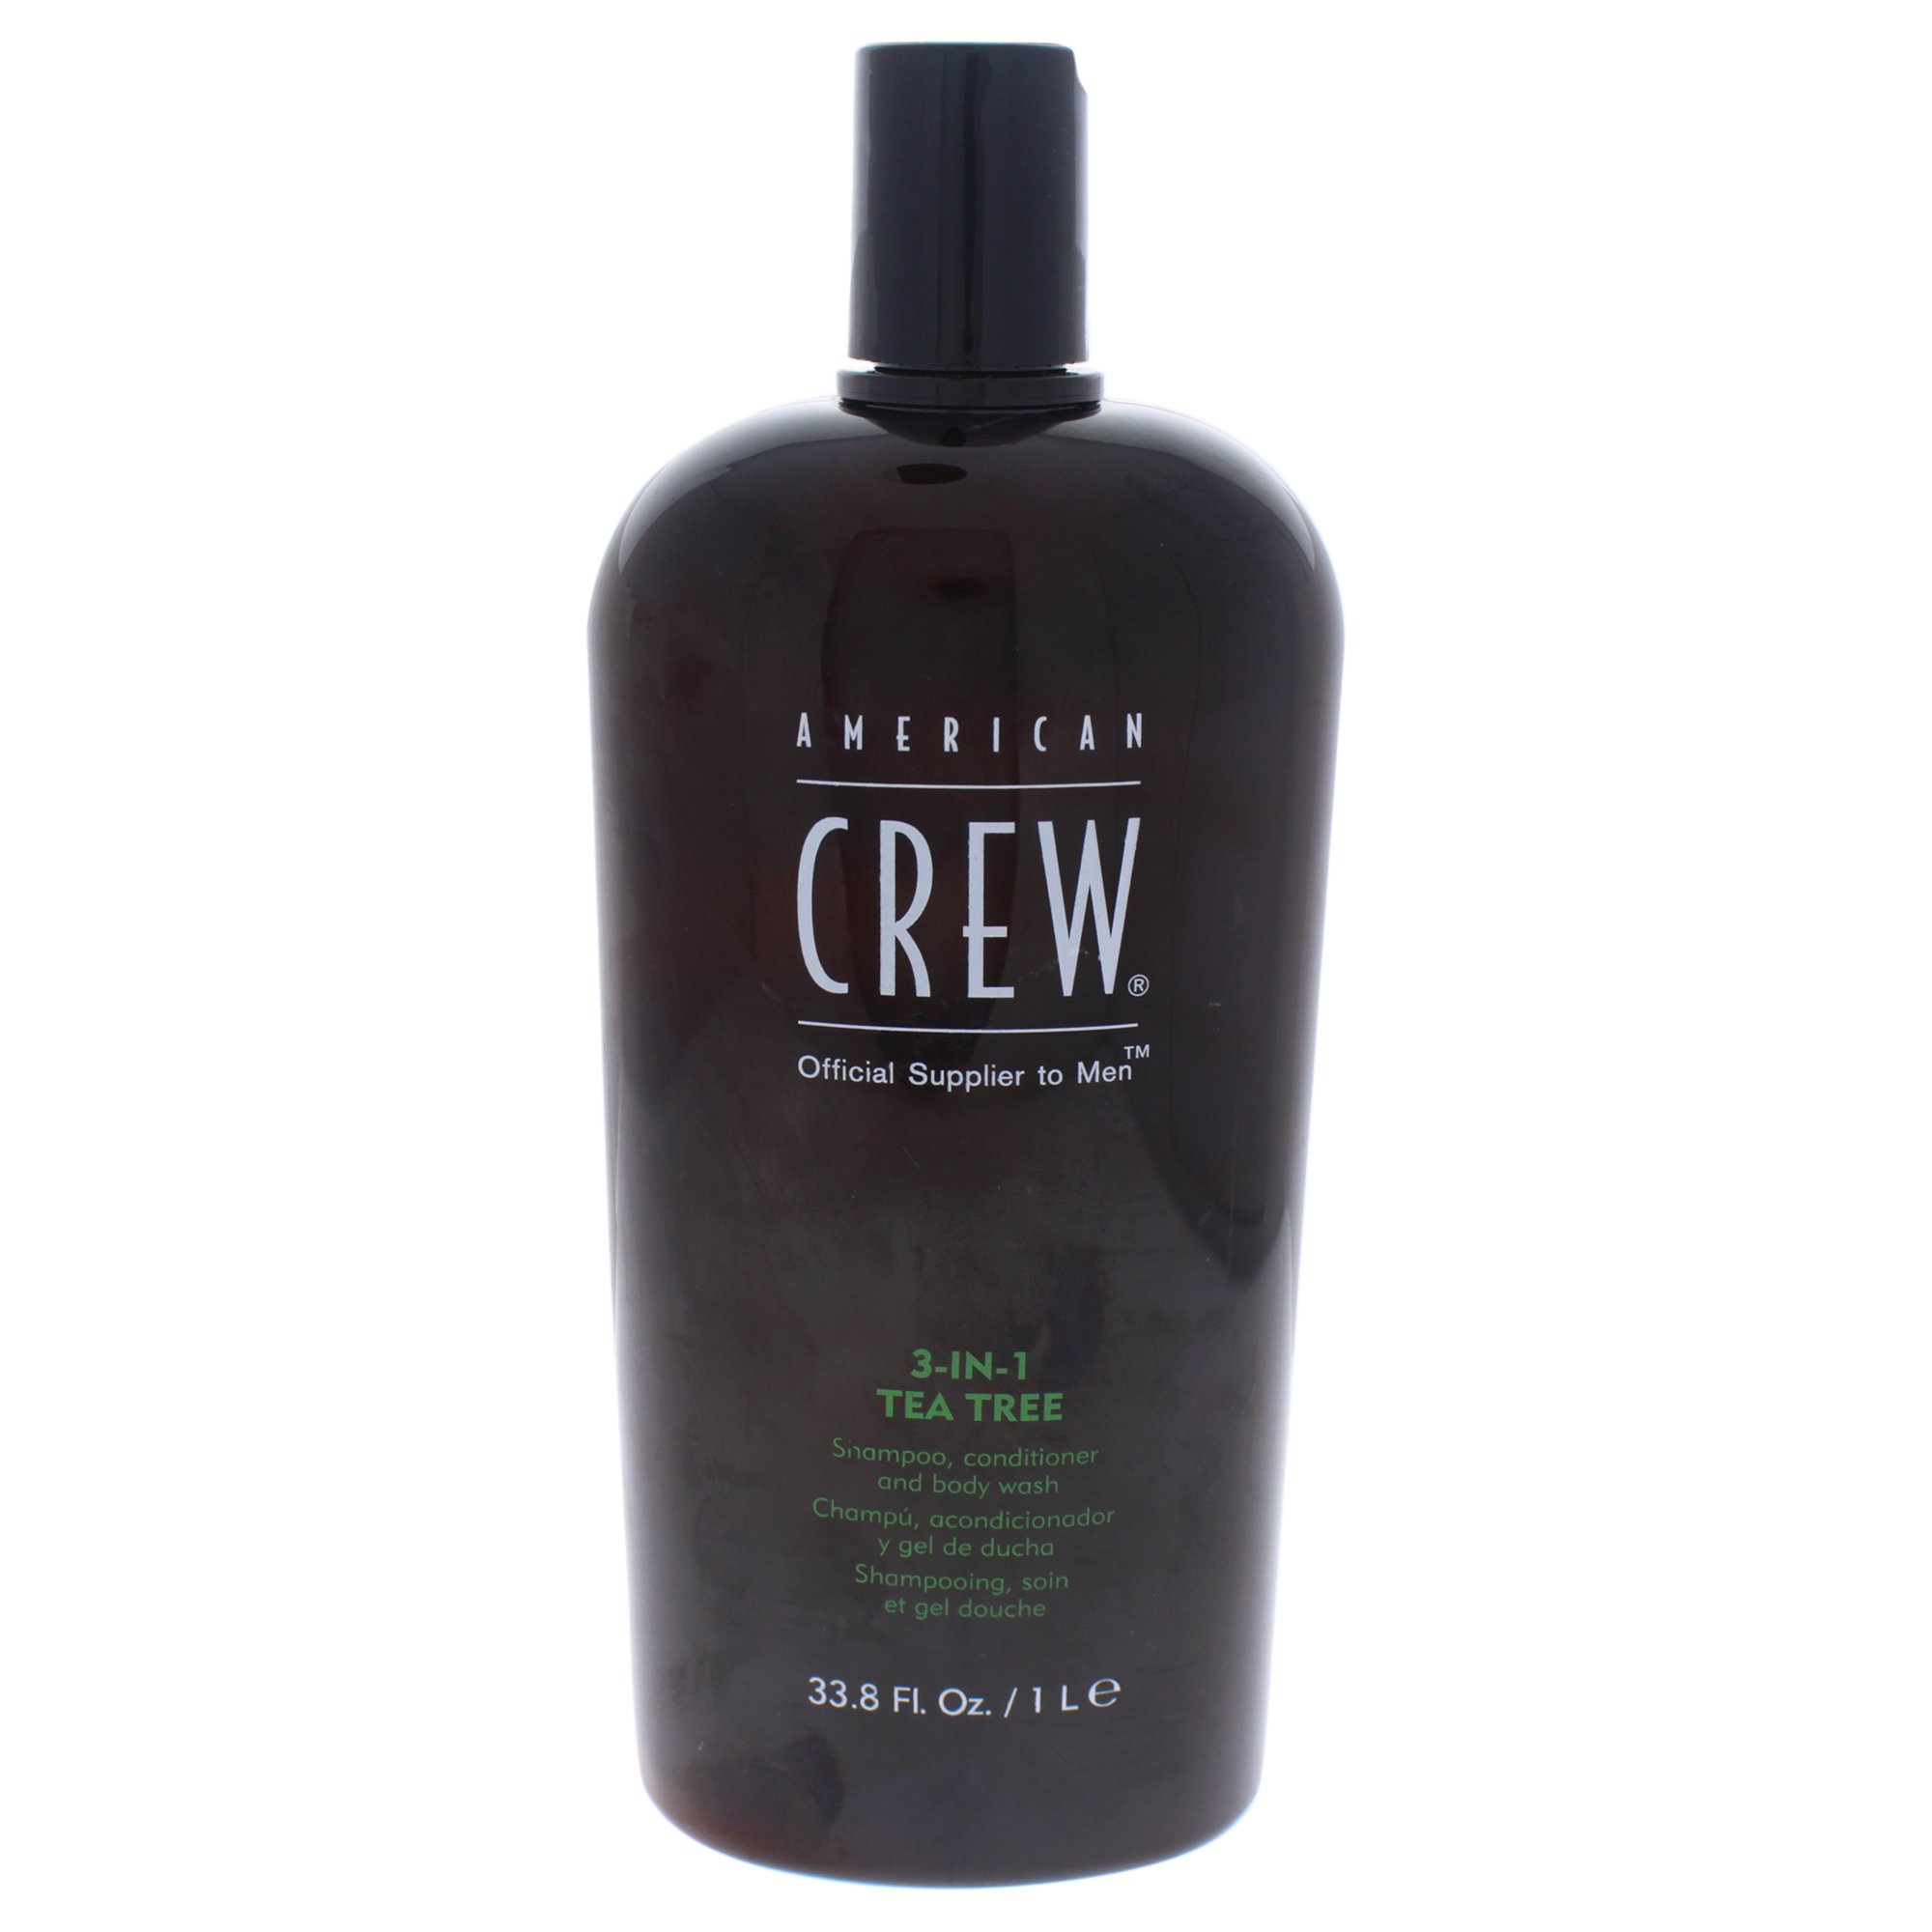 American Crew 3-In-1 Shampoo Conditioner & Bodywash, Tea Tree, 33.8 Ounce by AMERICAN CREW (Image #1)